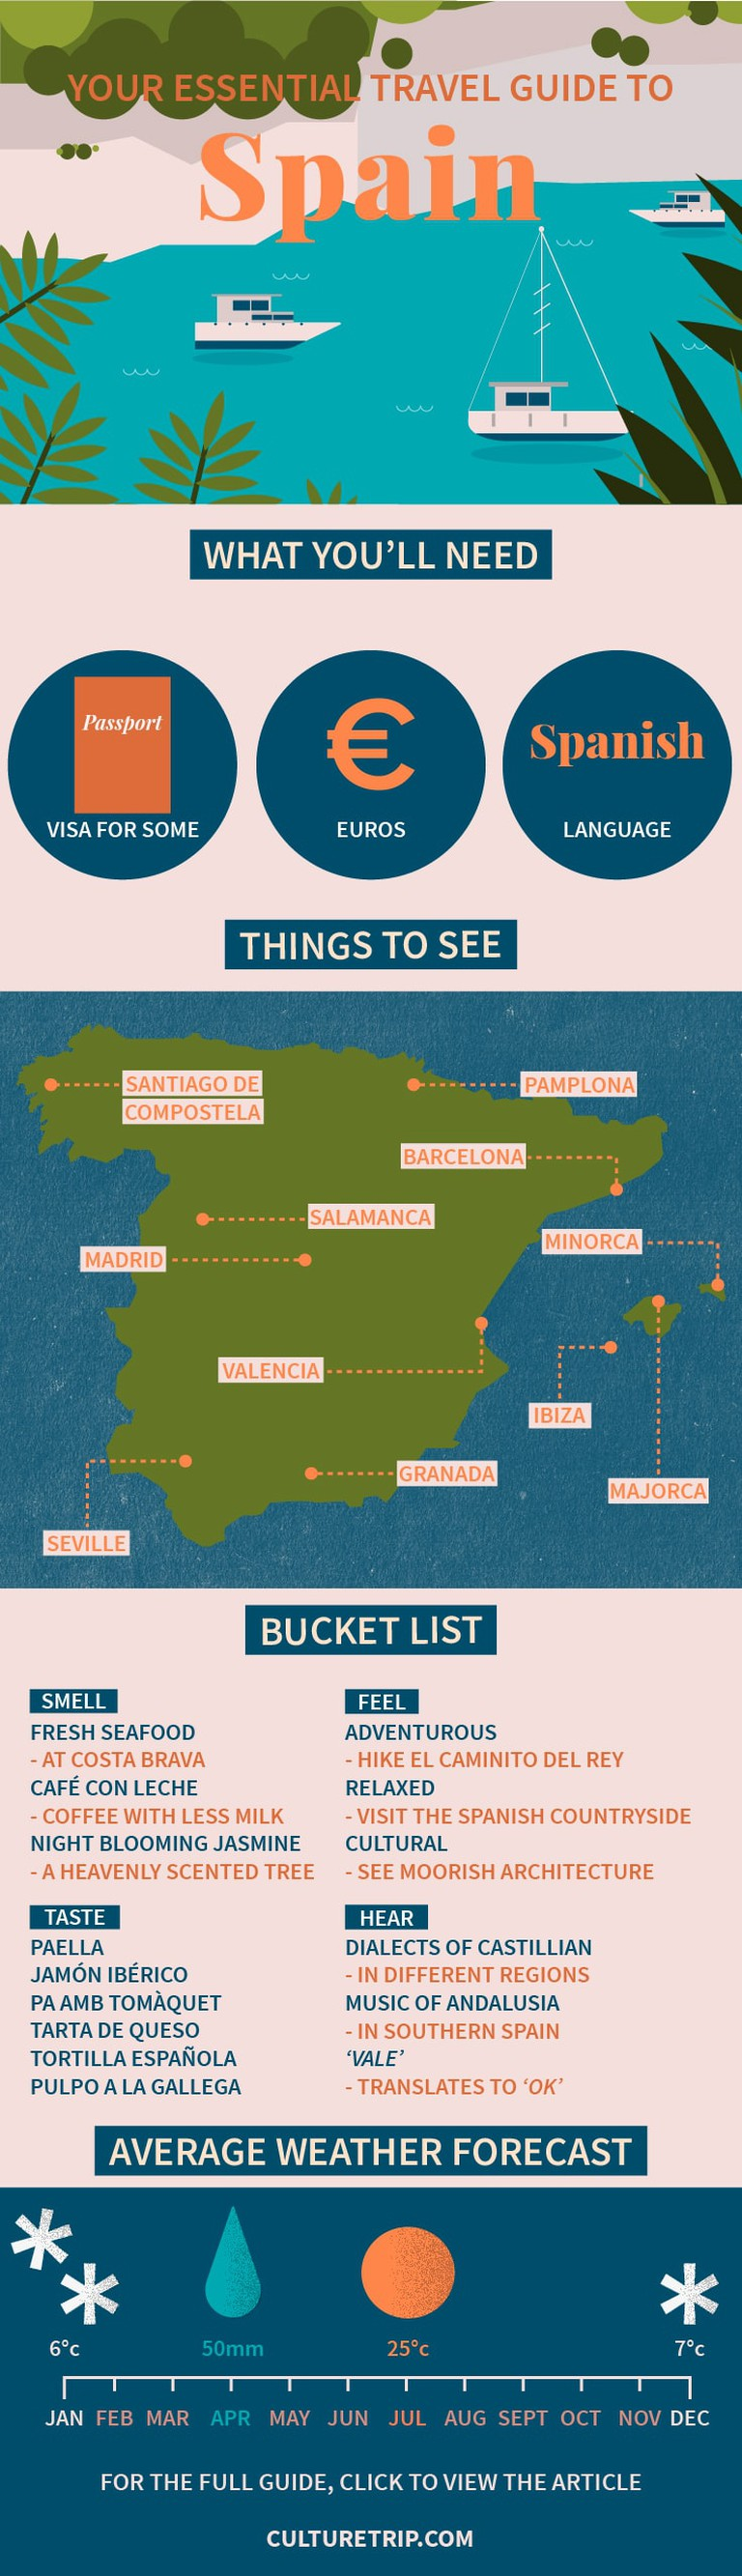 A travel guide for planning your trip to Spain.